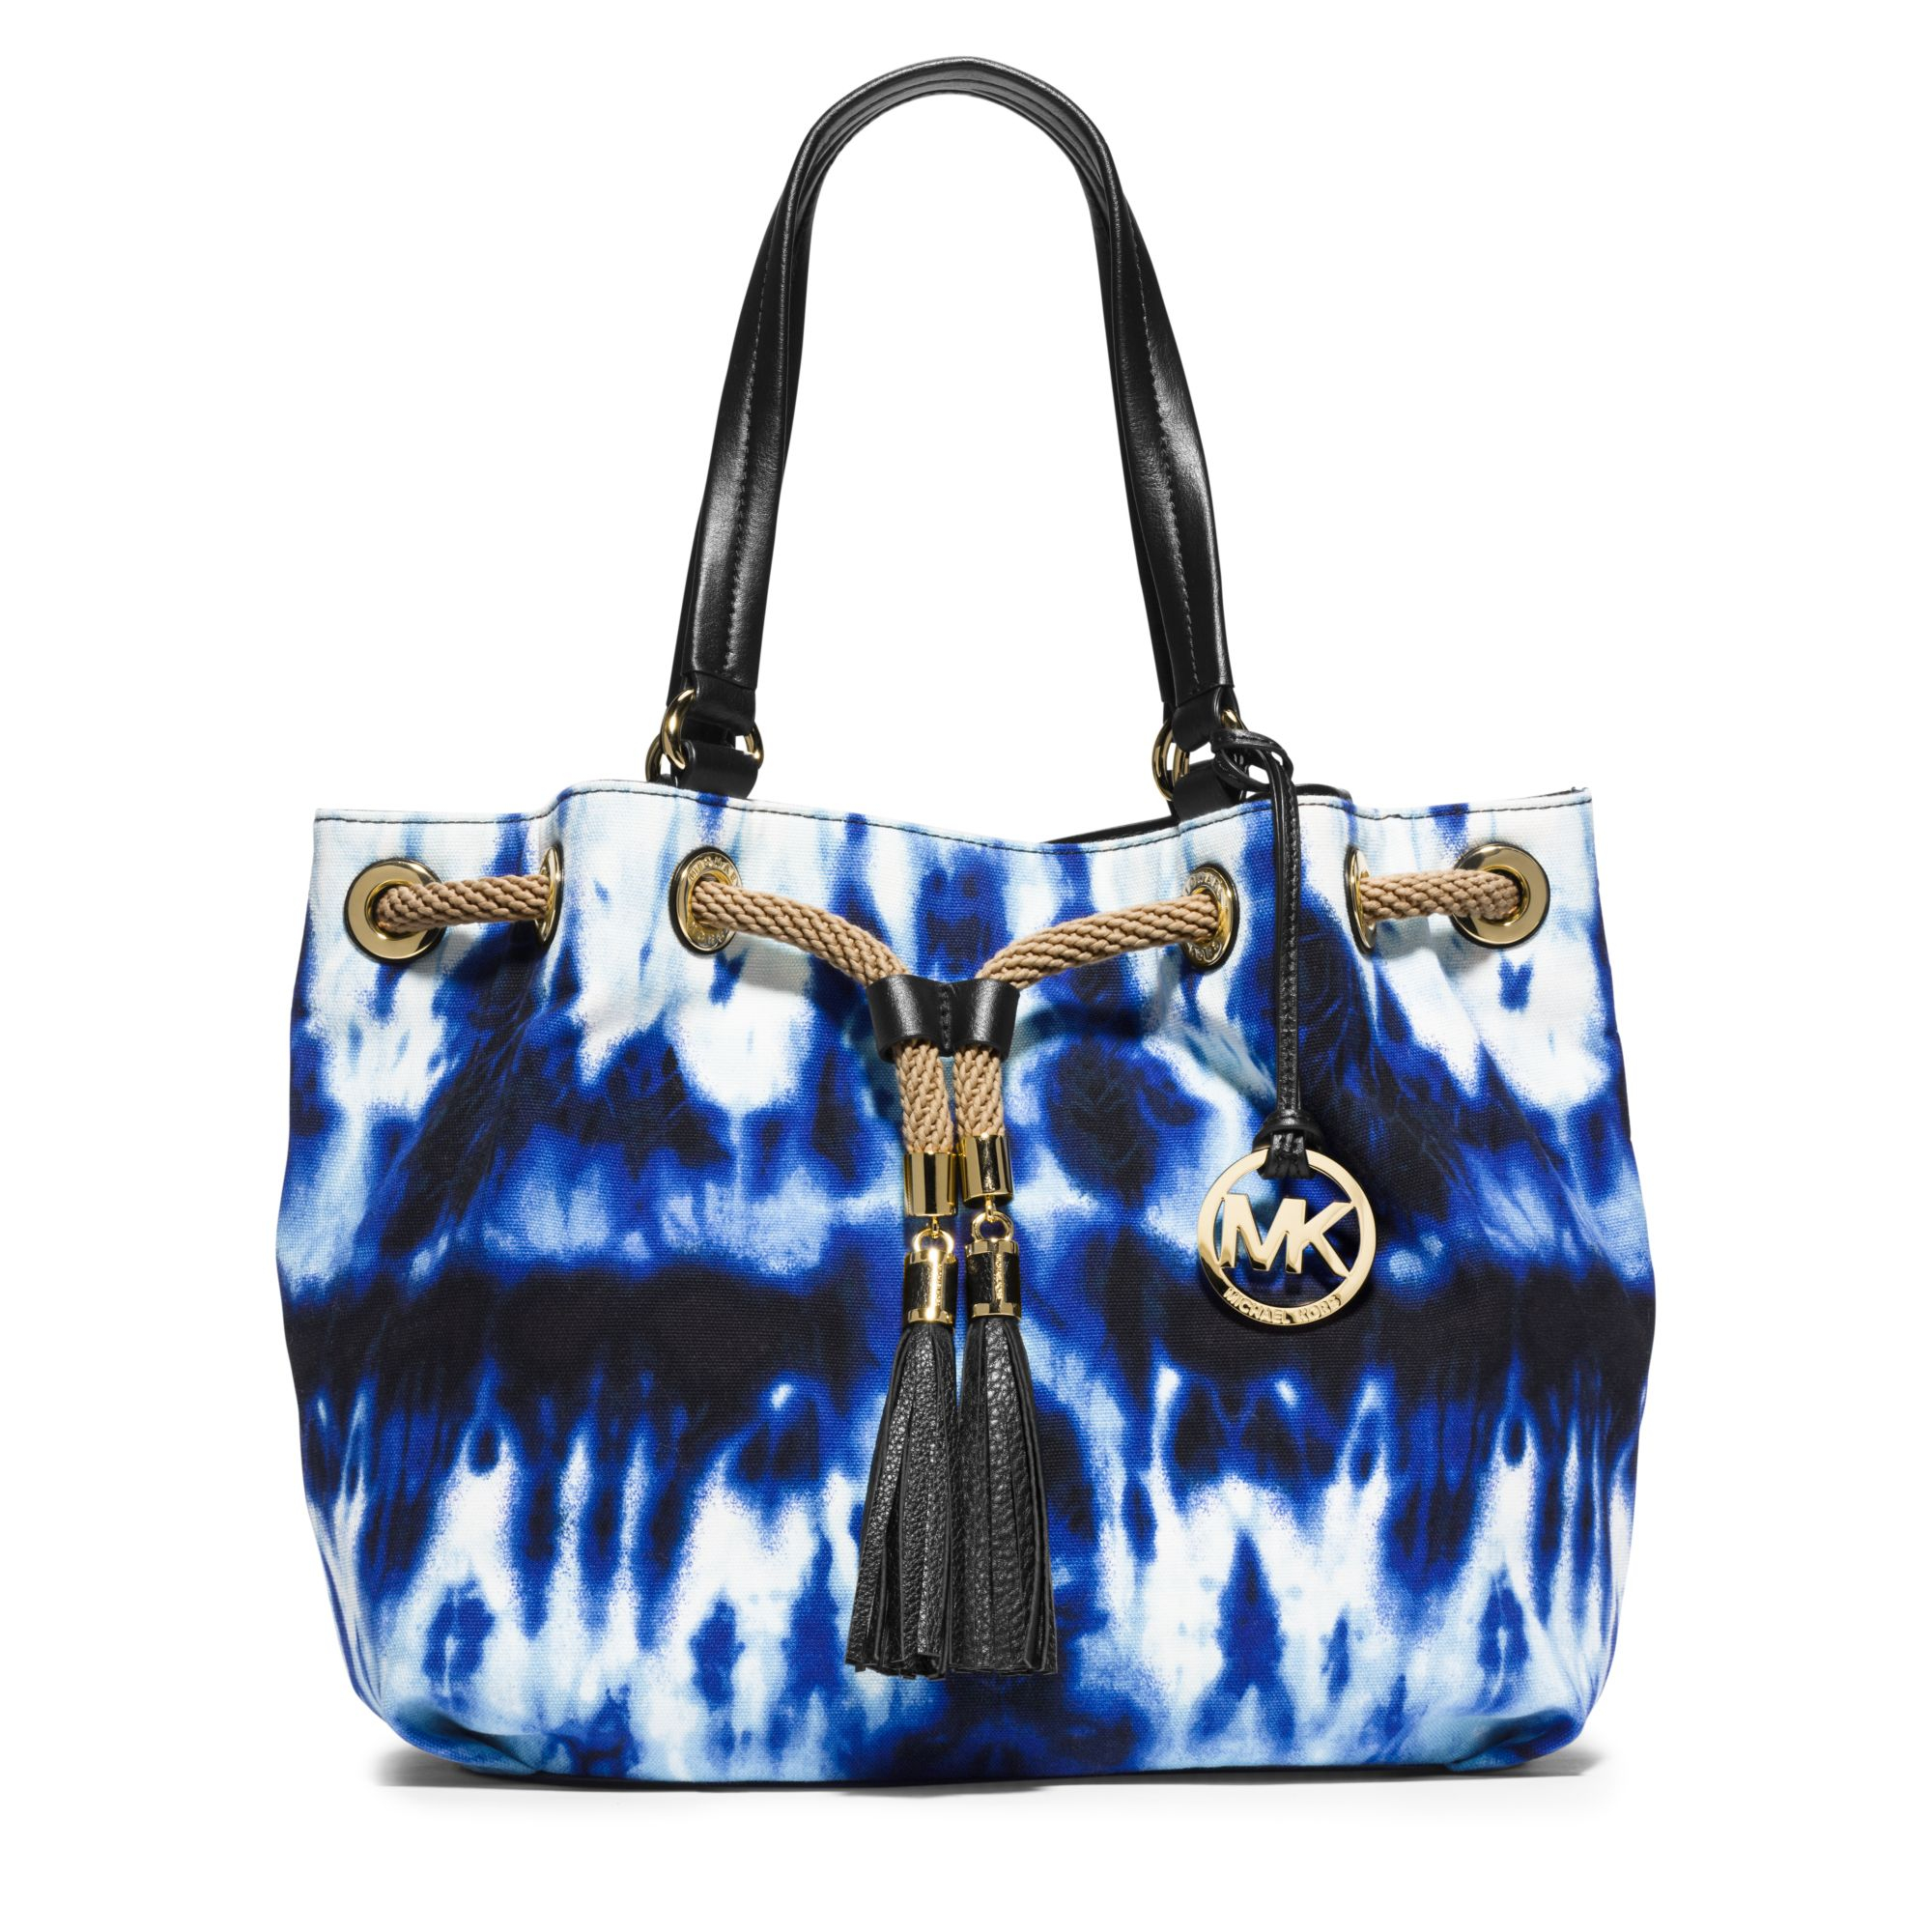 cdb4be88d27b sale michael kors bags blue mk purse poshmark c7a6c 90e4f  inexpensive lyst  michael kors marina large tie dye canvas tote in blue 30b50 d496e